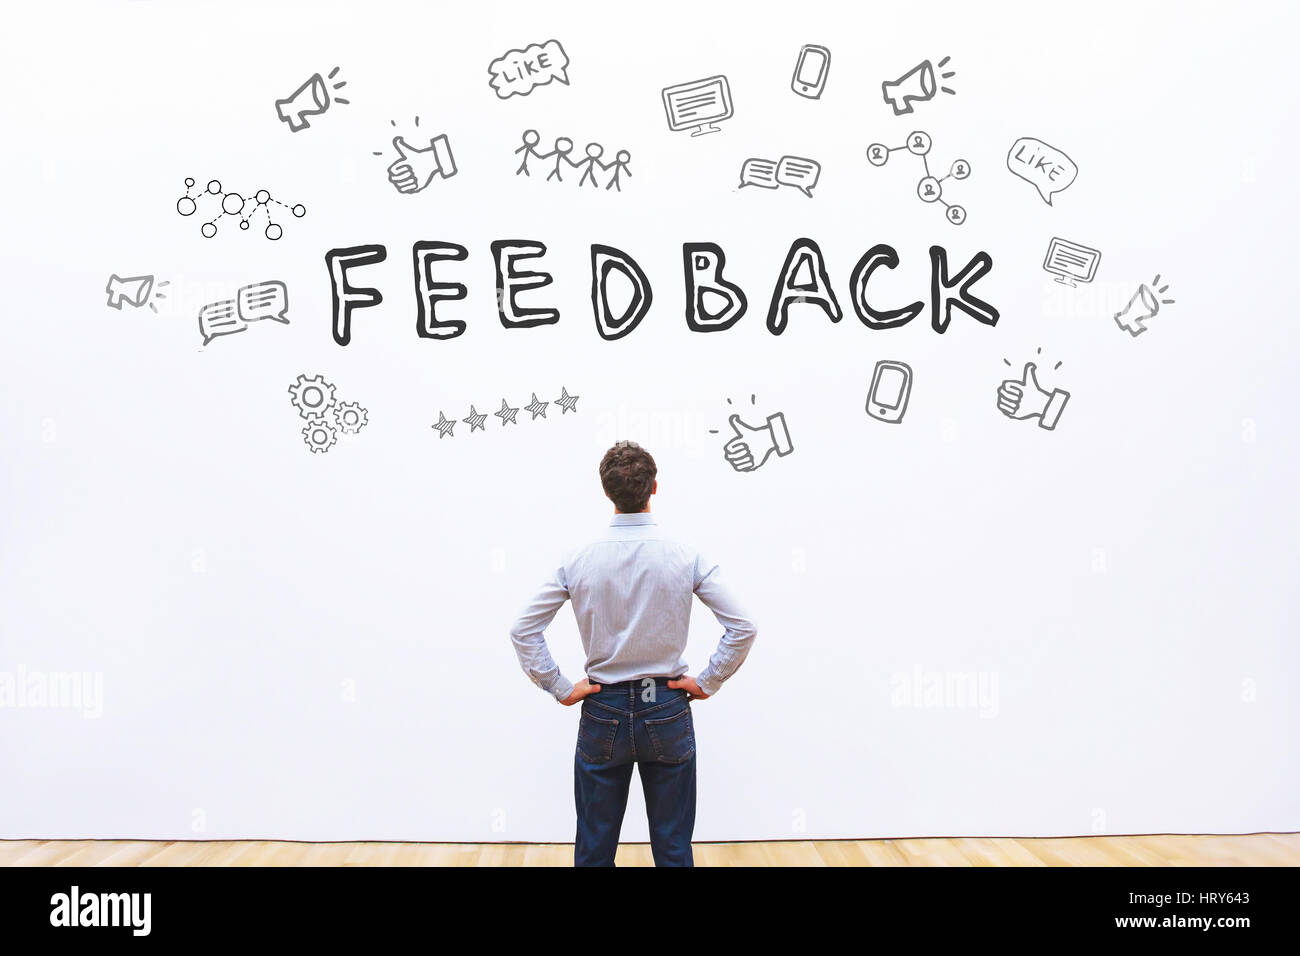 feedback concept, business man looking at the drawn sketch with icons - Stock Image